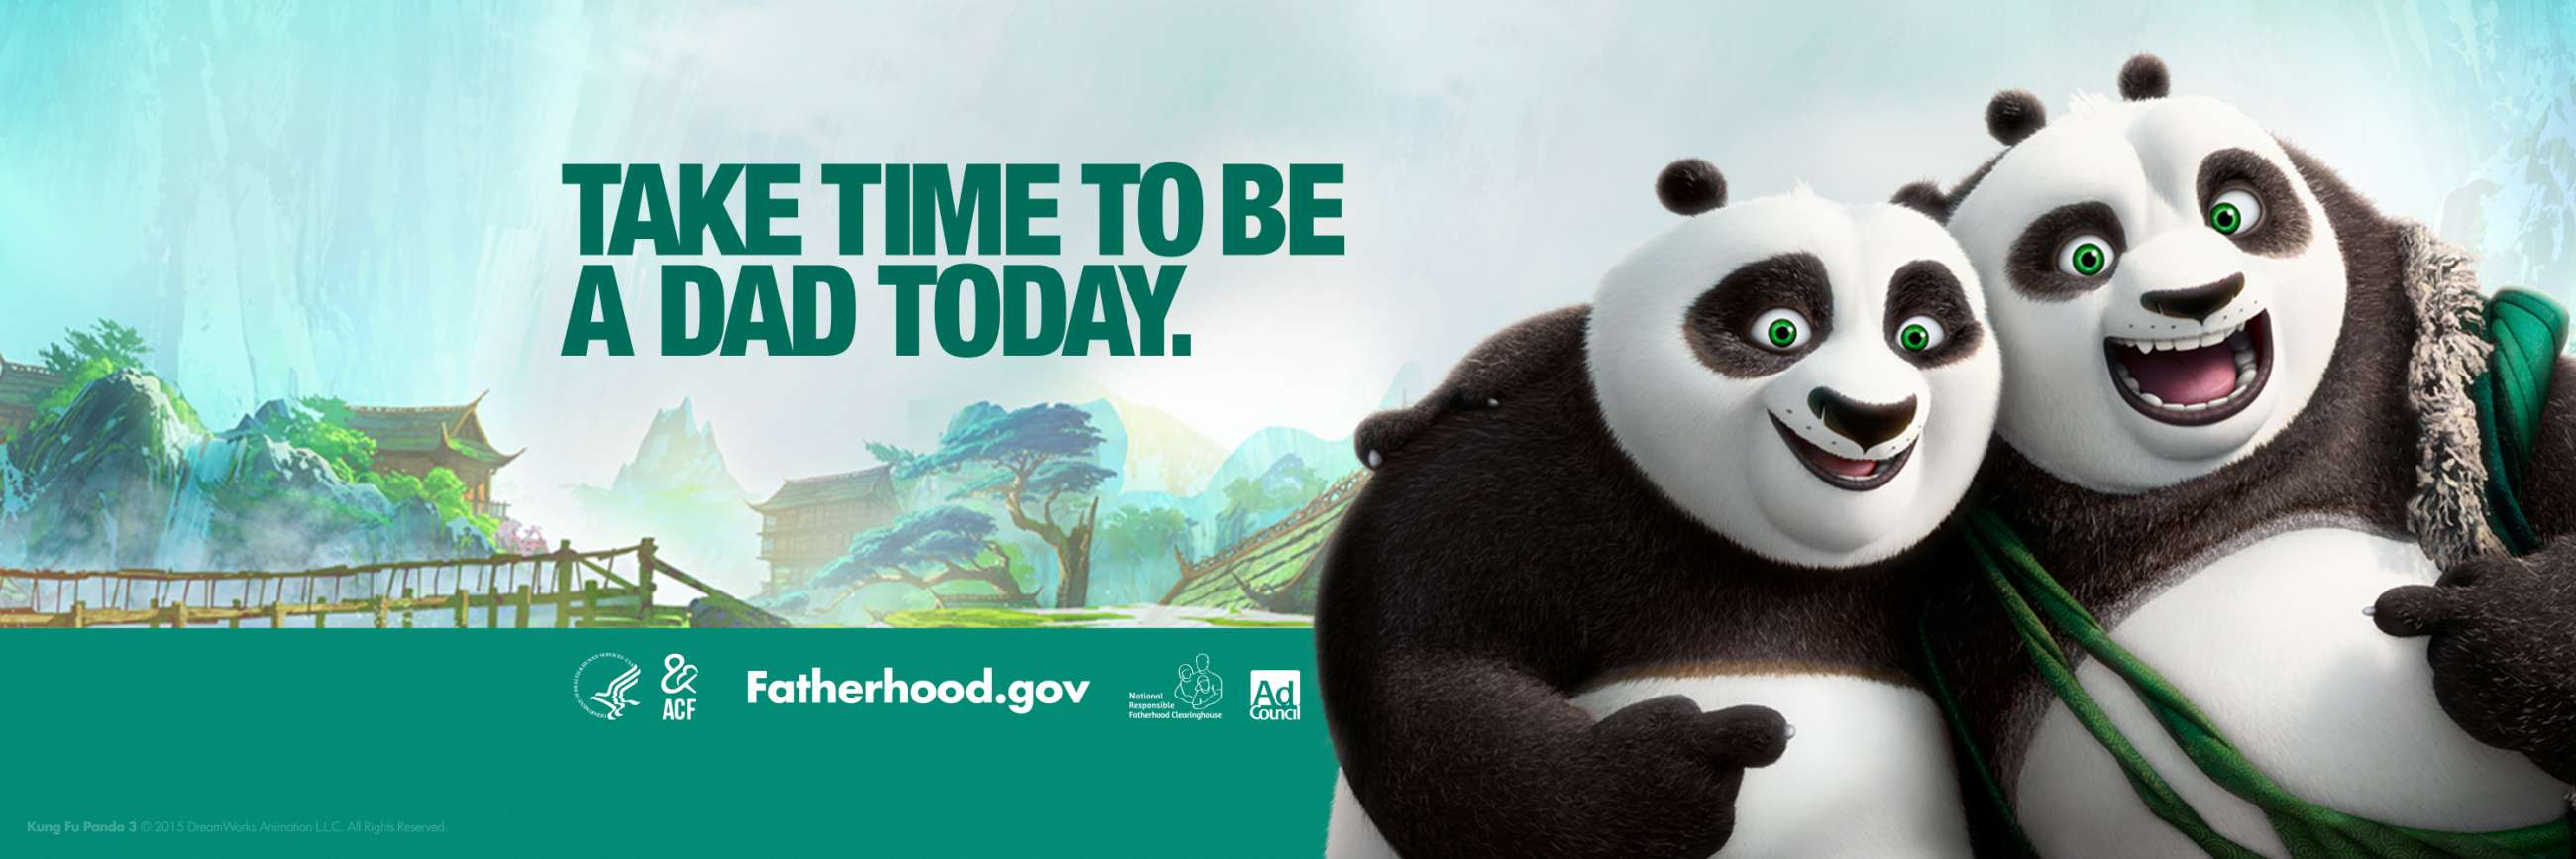 Kung Fu Panda 3, Po and His Dad Together, Take Time to Be a Dad Today, Fatherhood.Gov